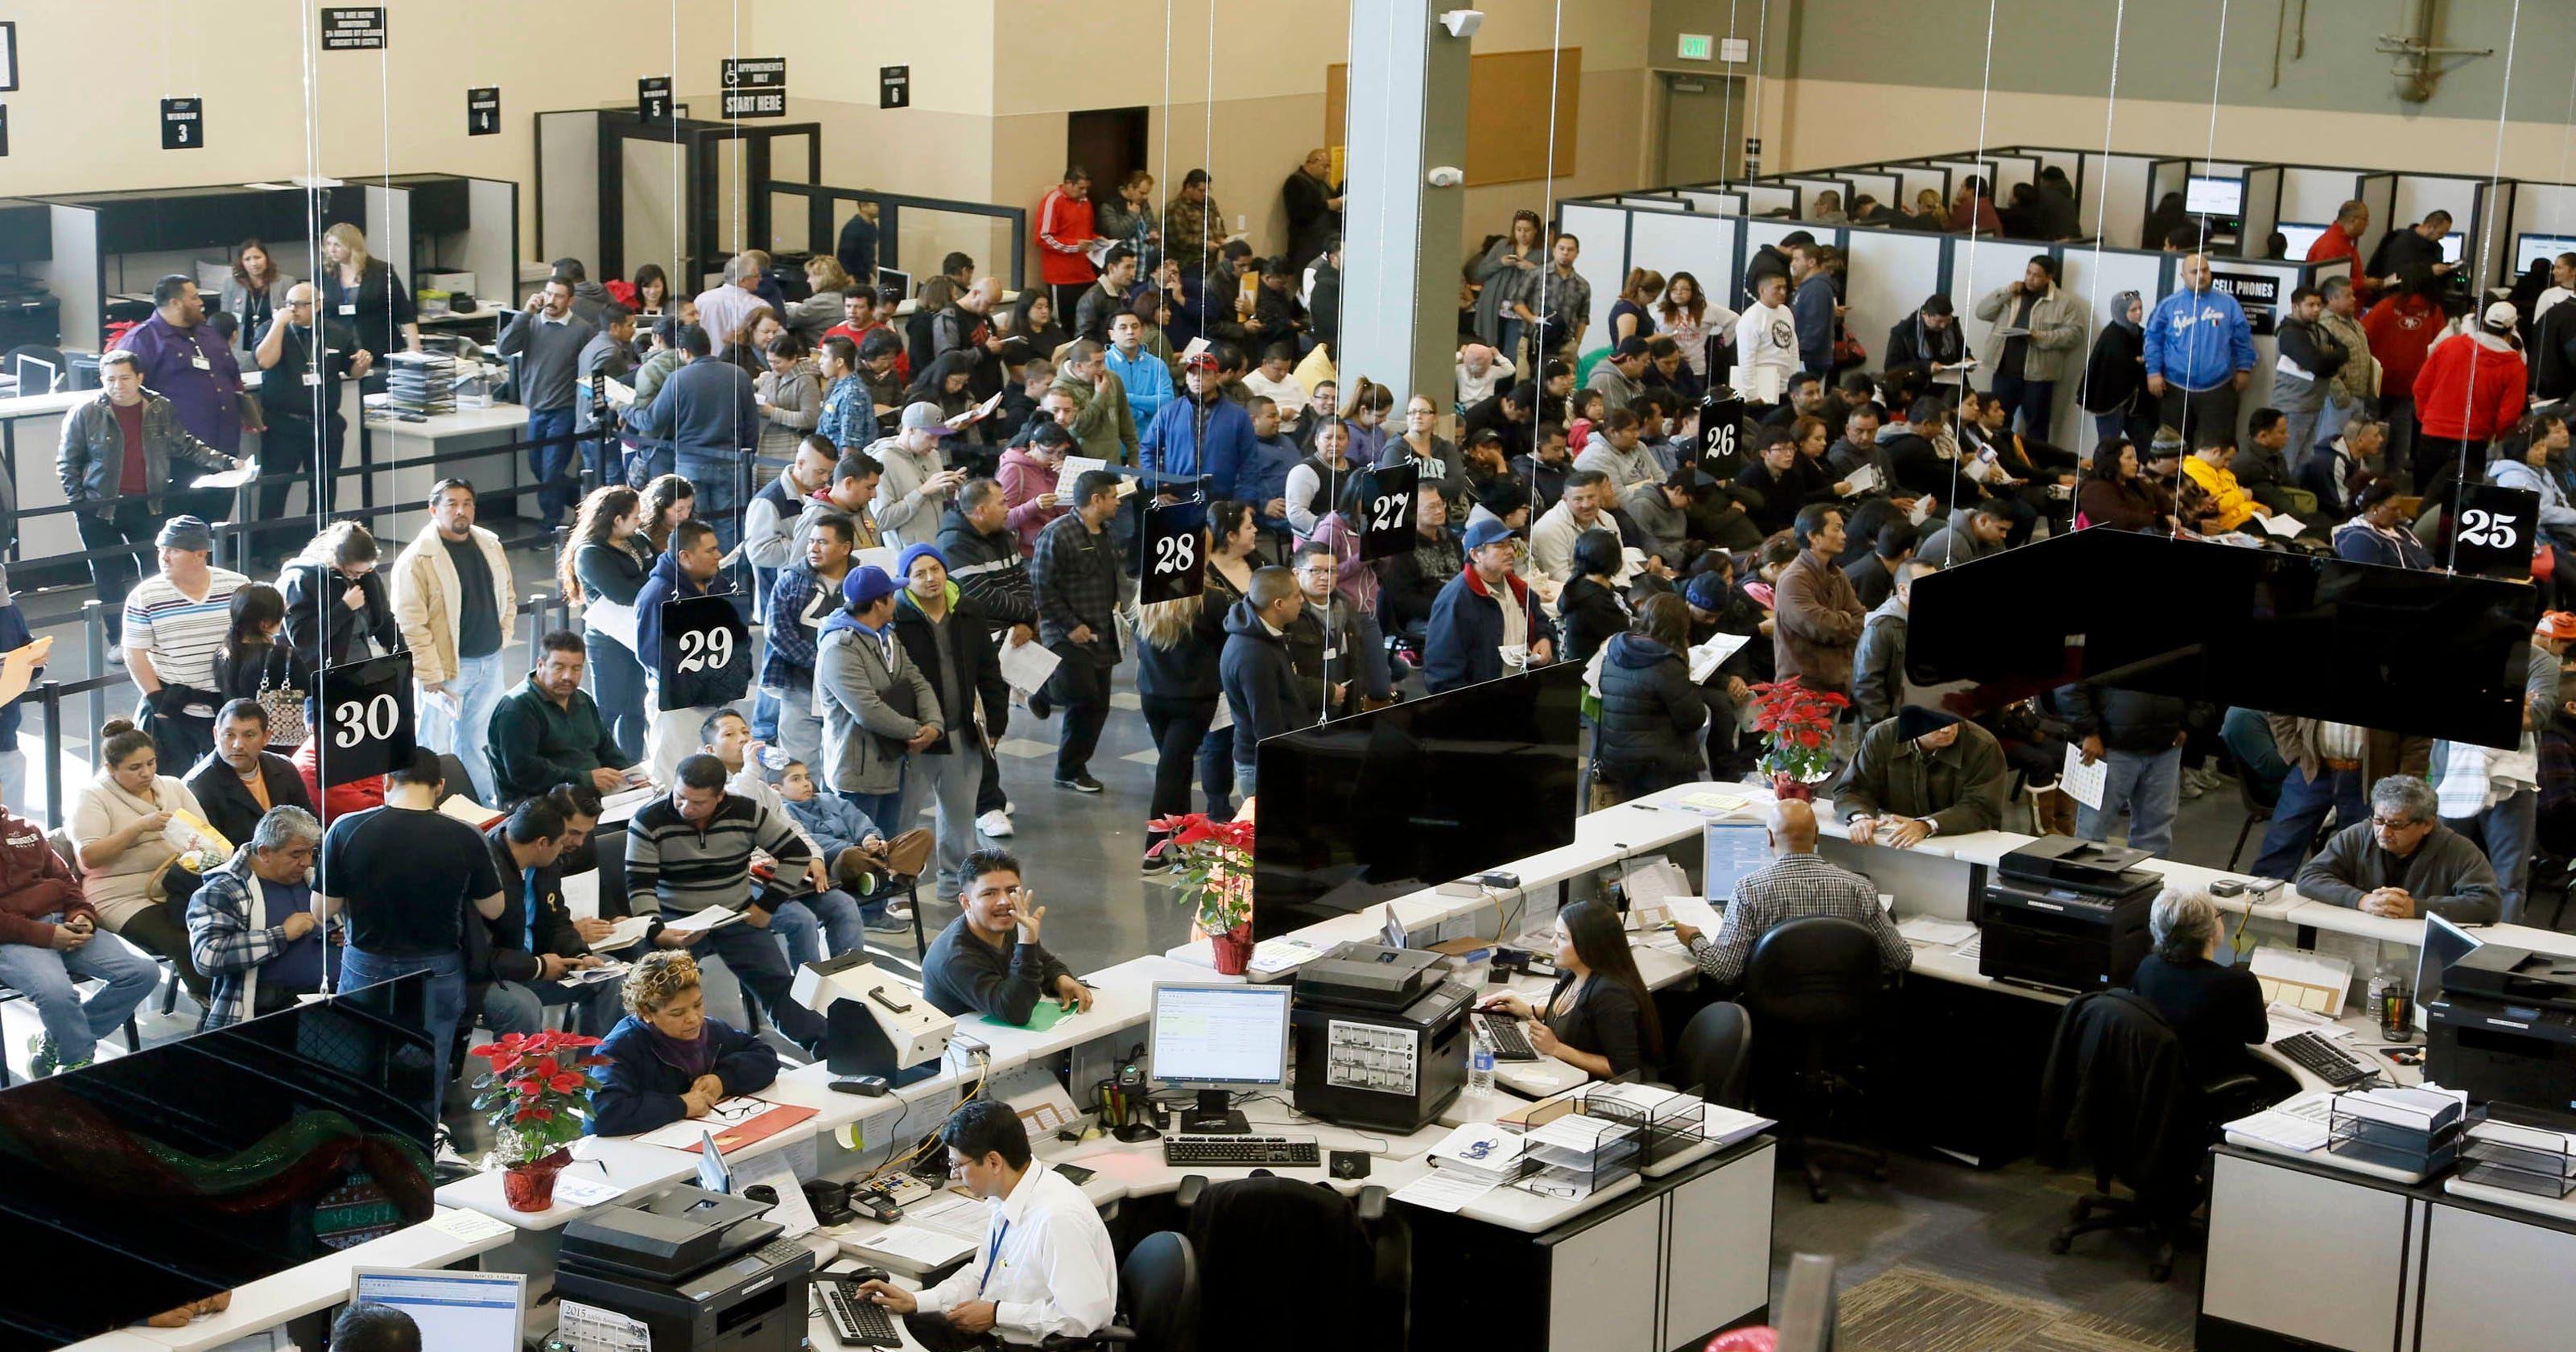 Anger over long DMV wait times in California inspires move